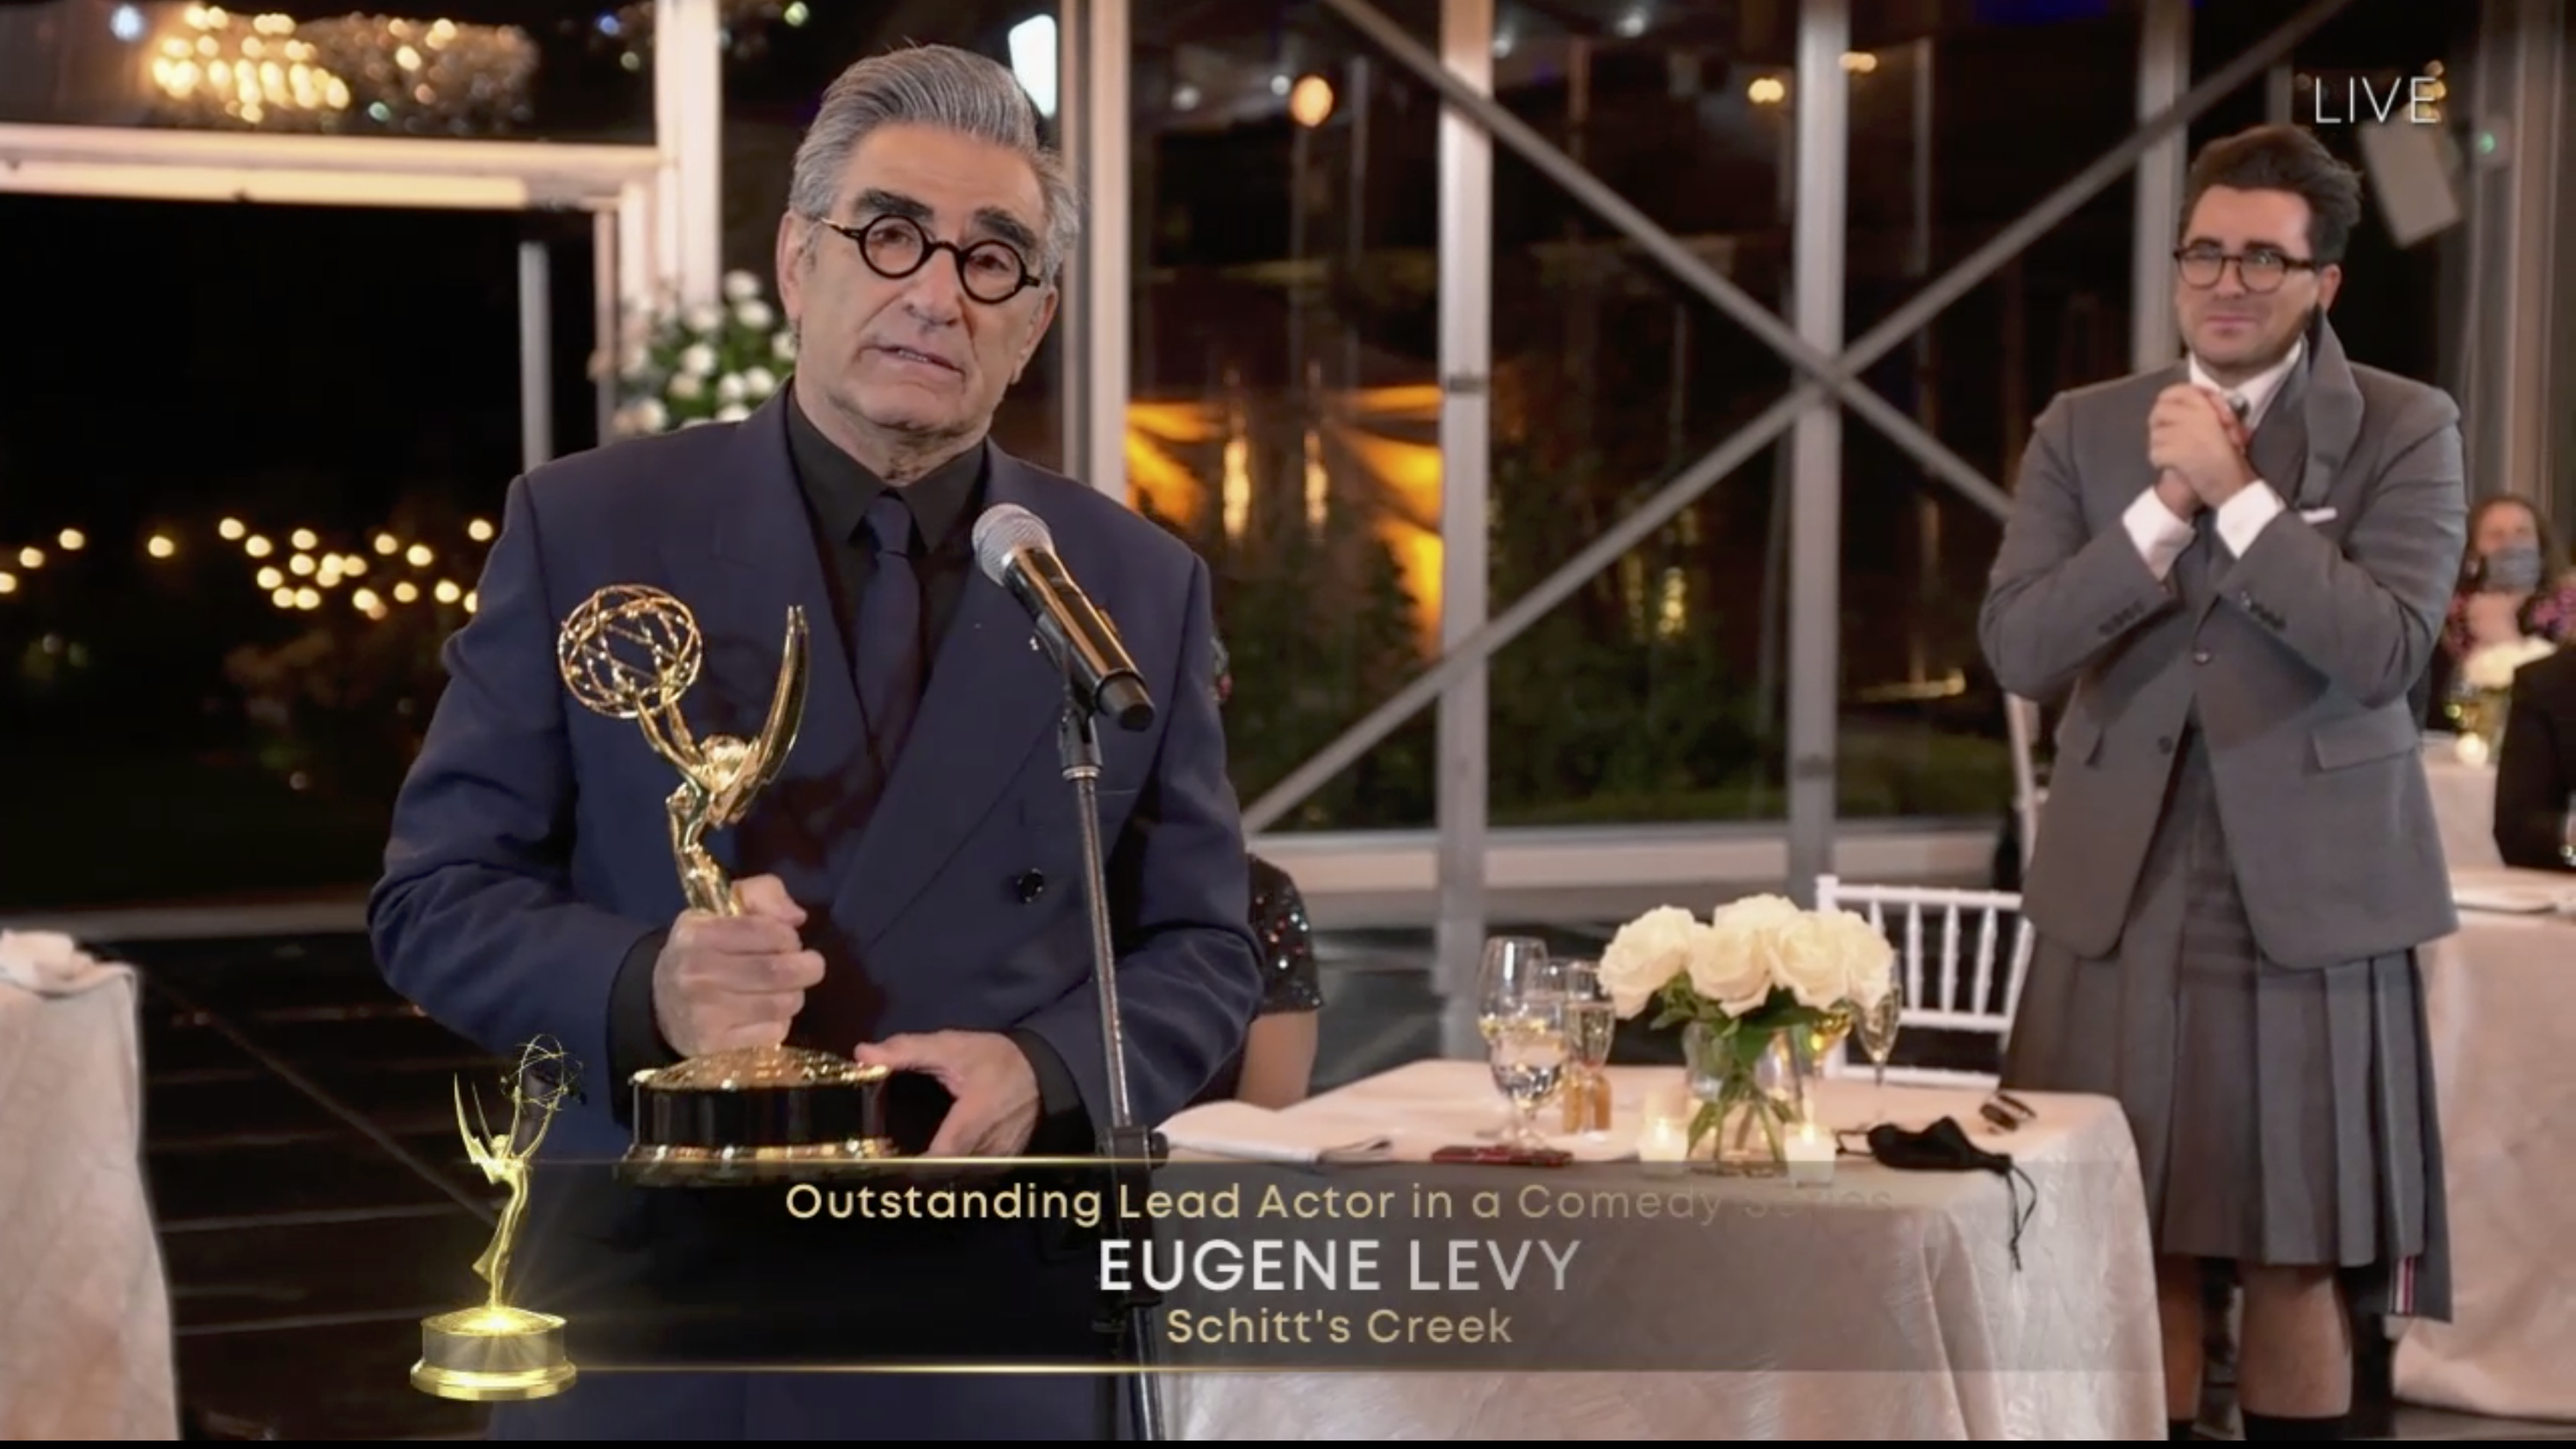 Eugene Levy accepts his award for lead actor in a comedy series for Schitt's Creek as his son (and creative partner) Dan Levy looks on at Sunday night's Emmy Awards.